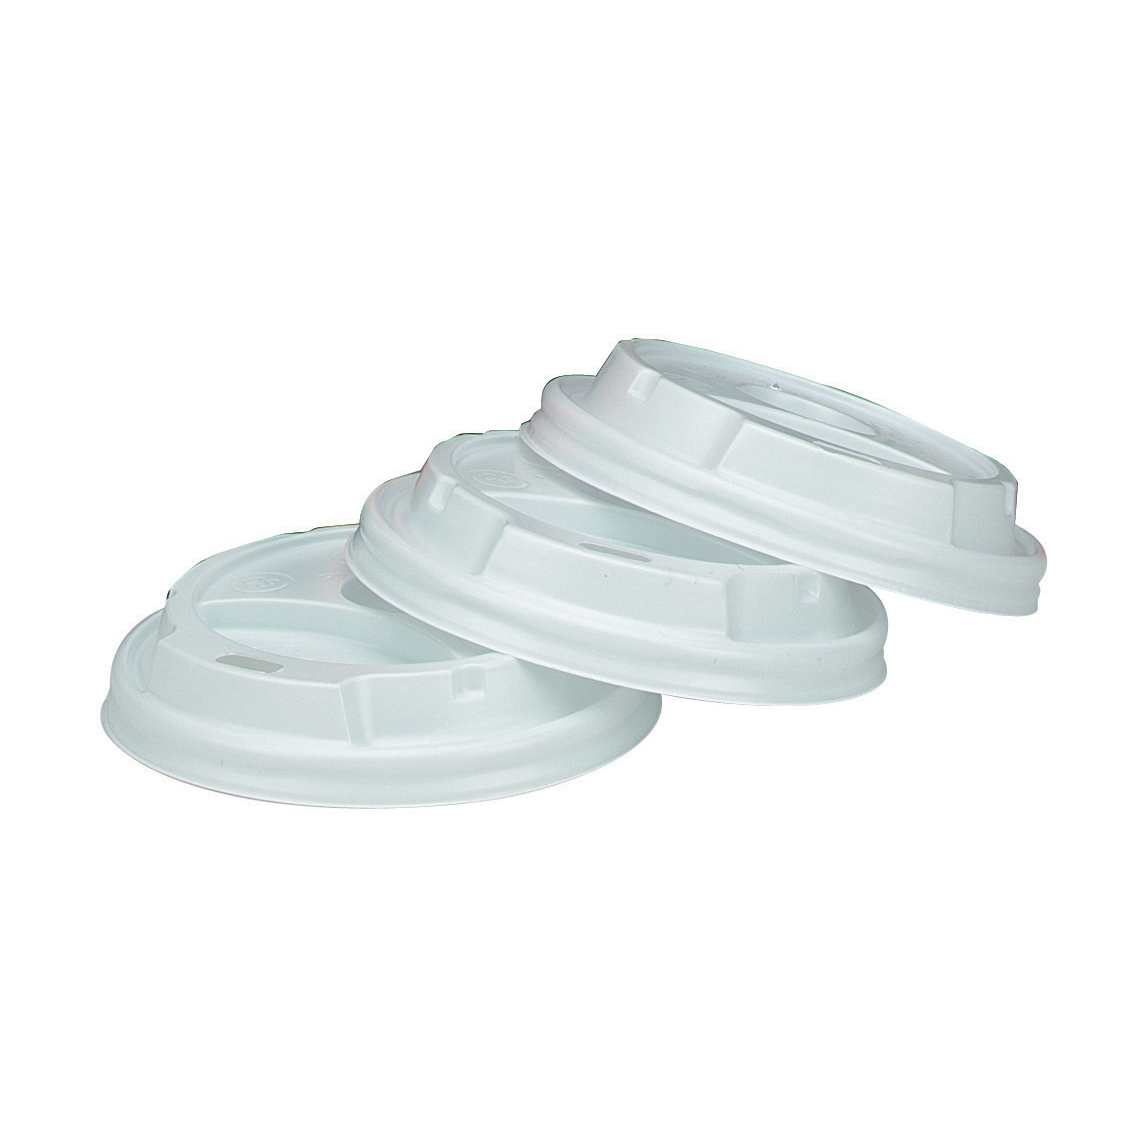 Disposable Cups & Accessories Disposable Sip Thru Lids For Use With 8oz 236ml Ripple Cups White Ref 0511054 Pack 100